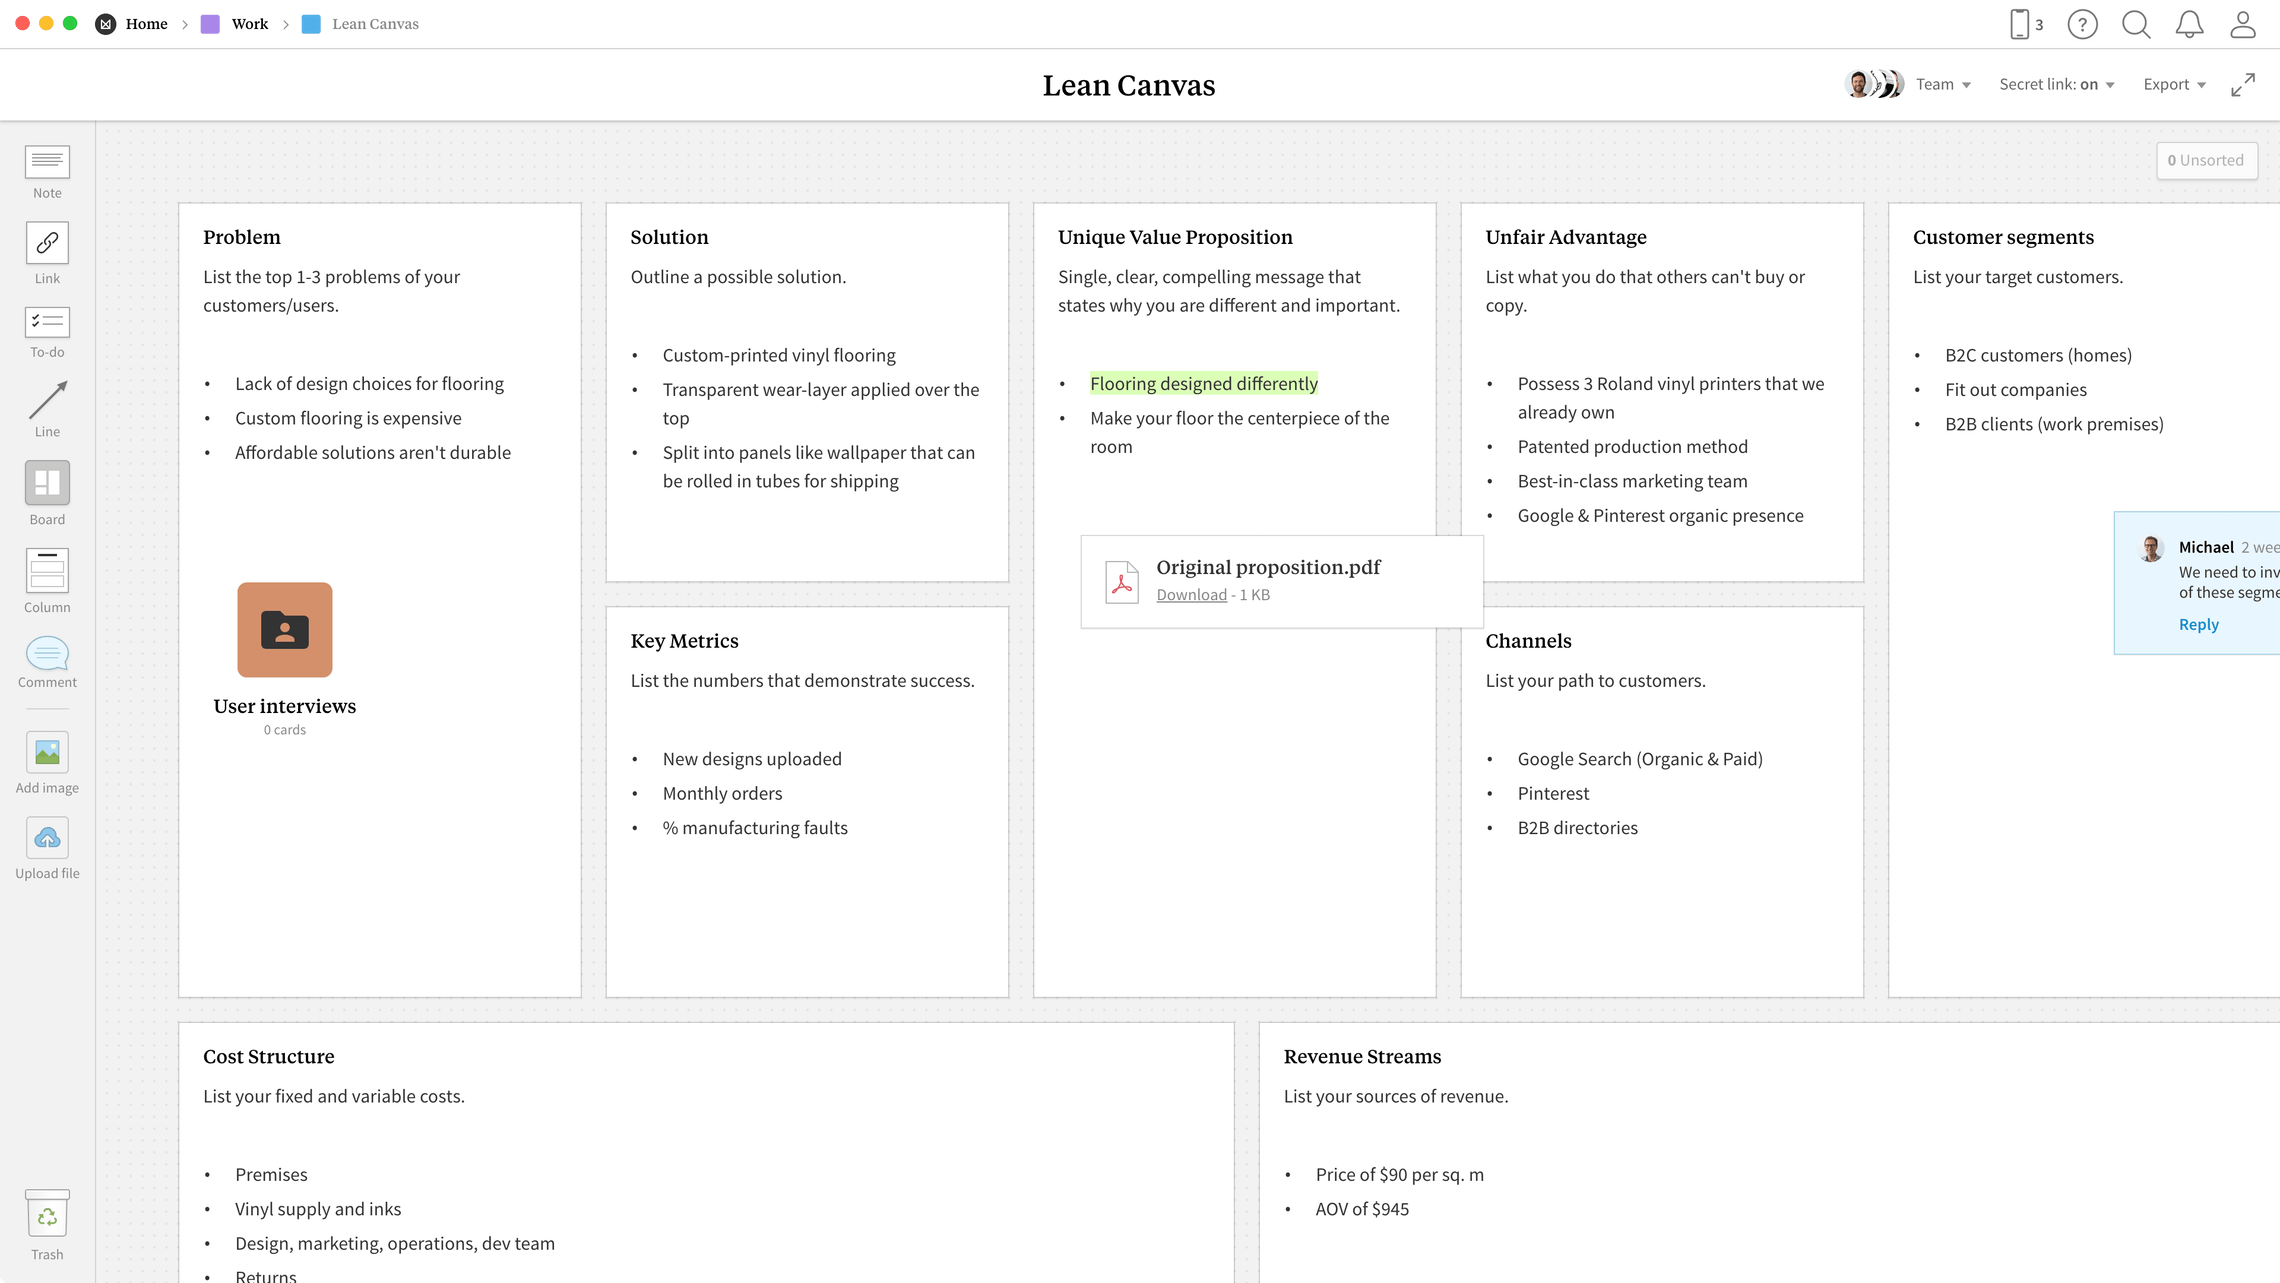 Lean Canvas Template, within the Milanote app